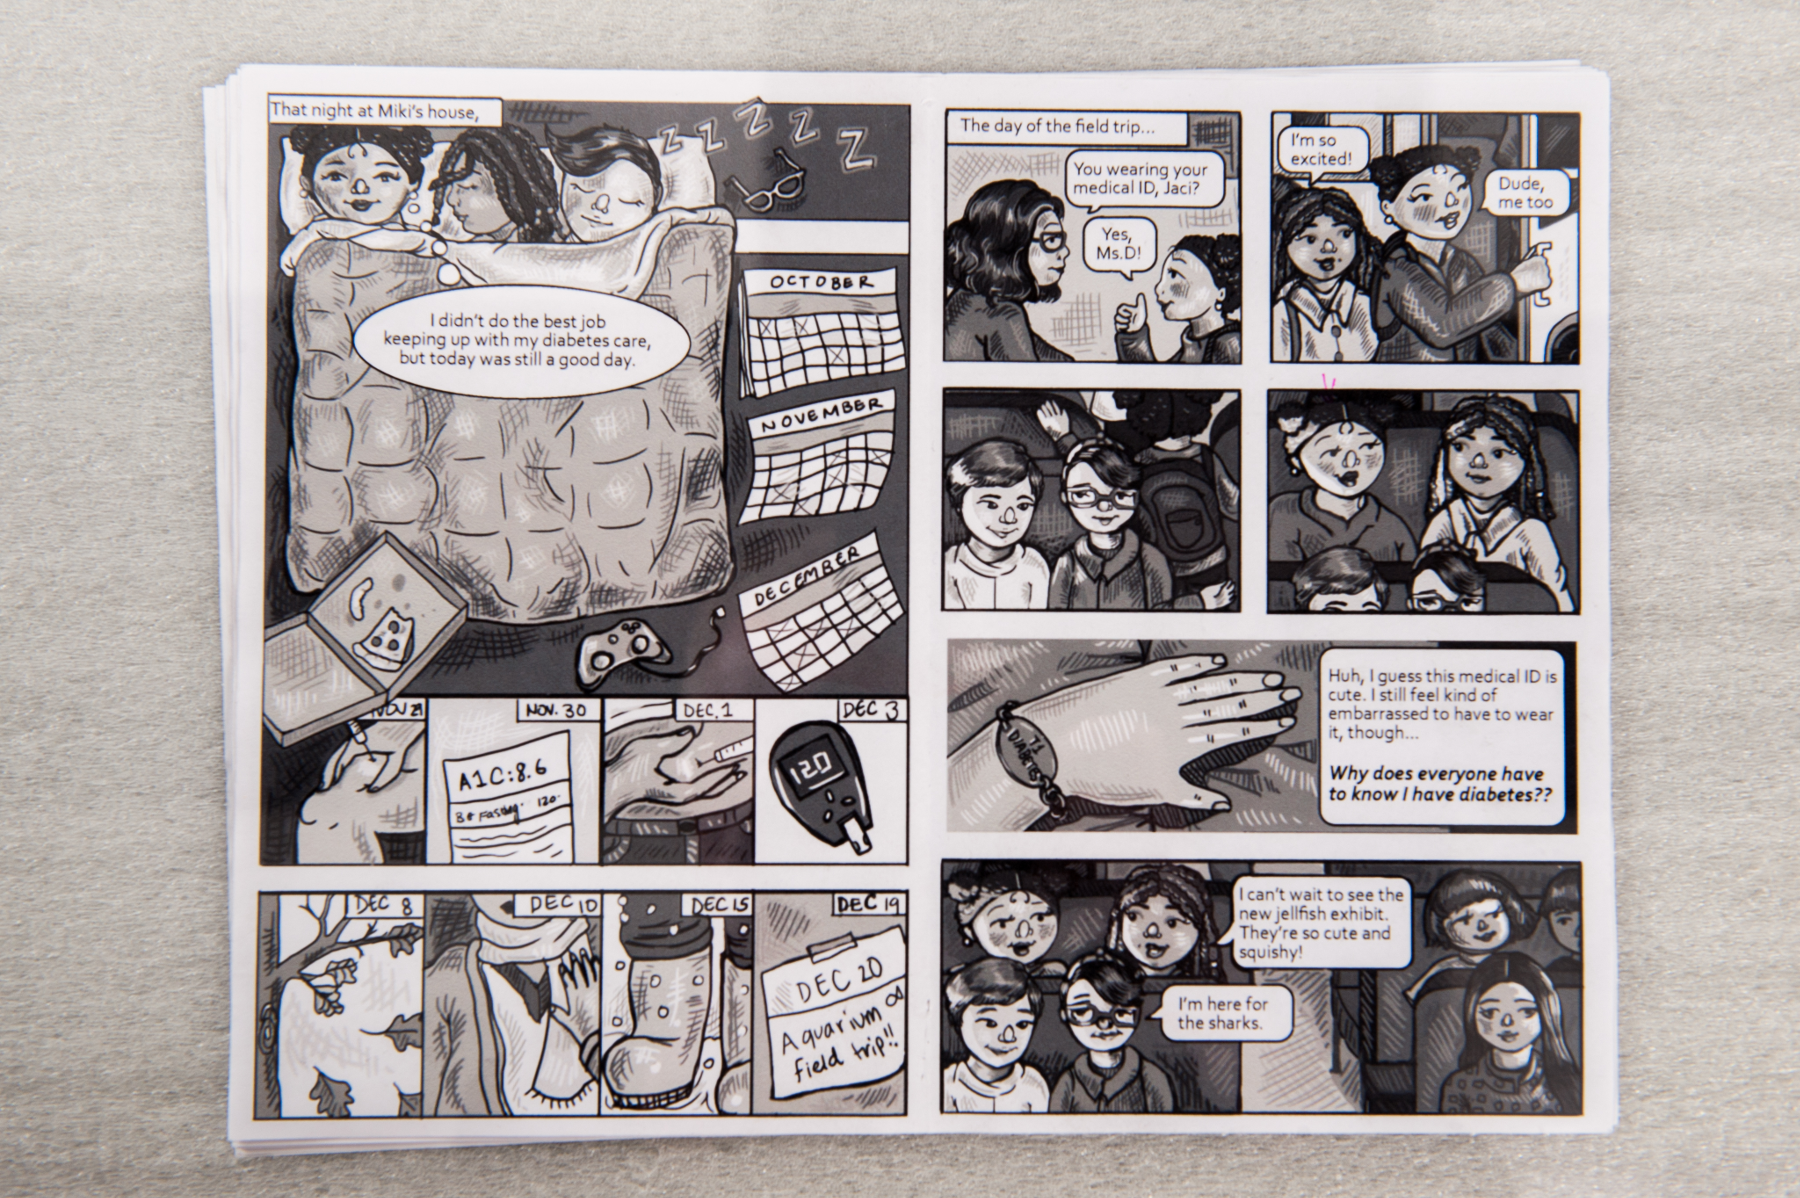 Real Research: Lohitha Kethu creates graphic novel to help